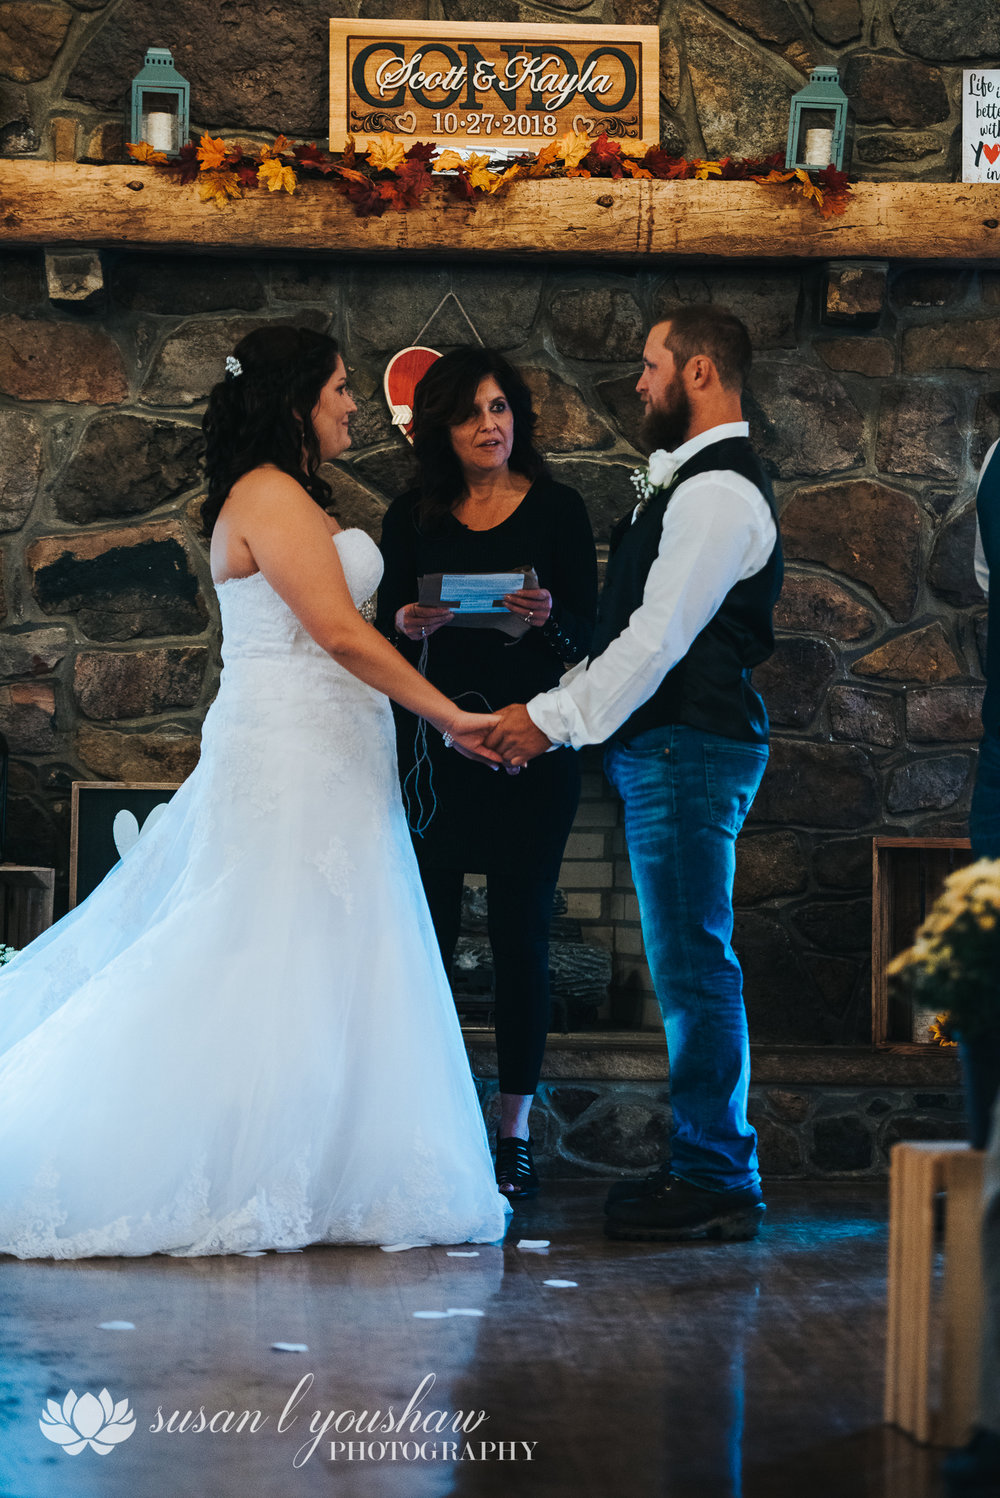 Blog Kayla and Scott 10-27-2018 SLY Photography LLC -62.jpg